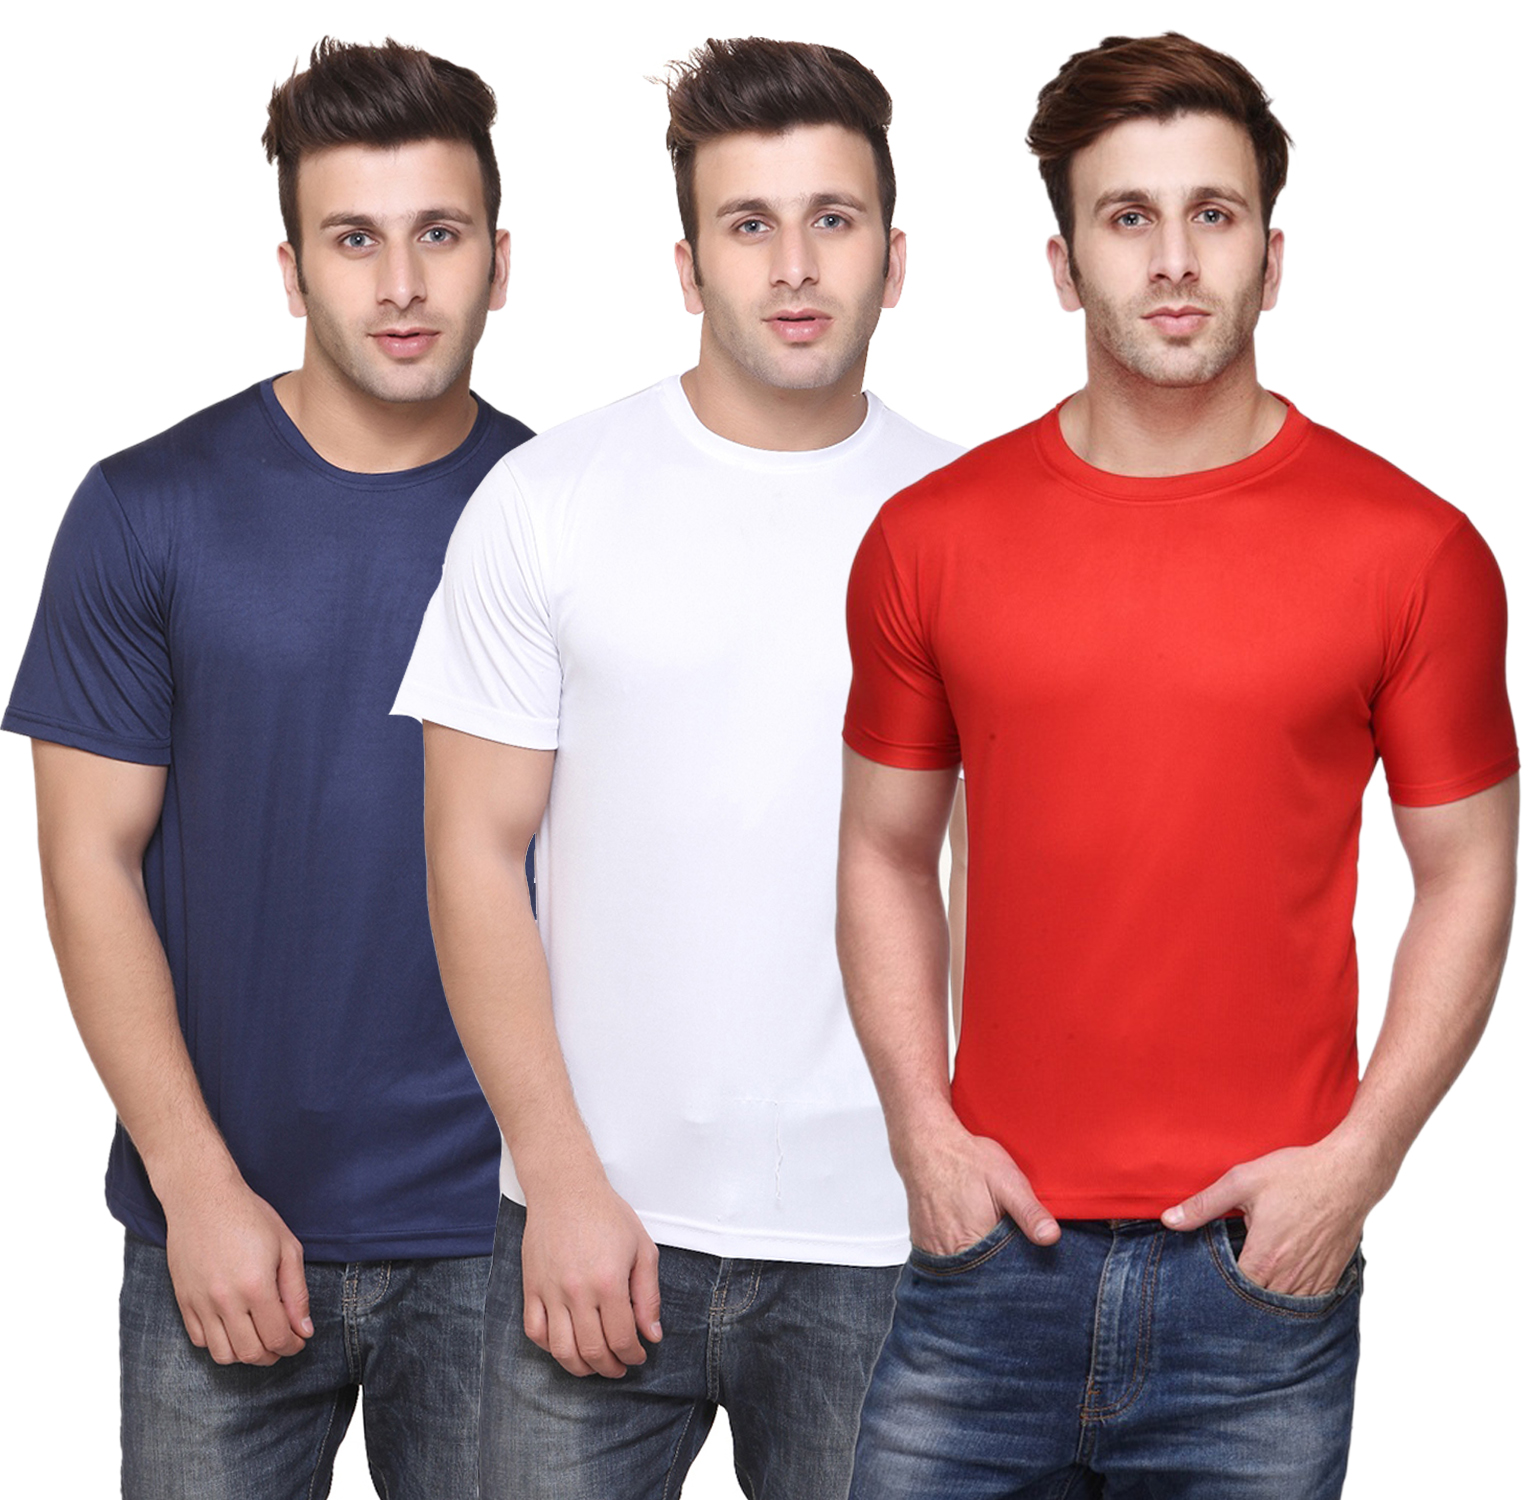 Funky Guys Round Neck Men'S Polyster Blend Dri Fit Tshirts (Pack Of 3)